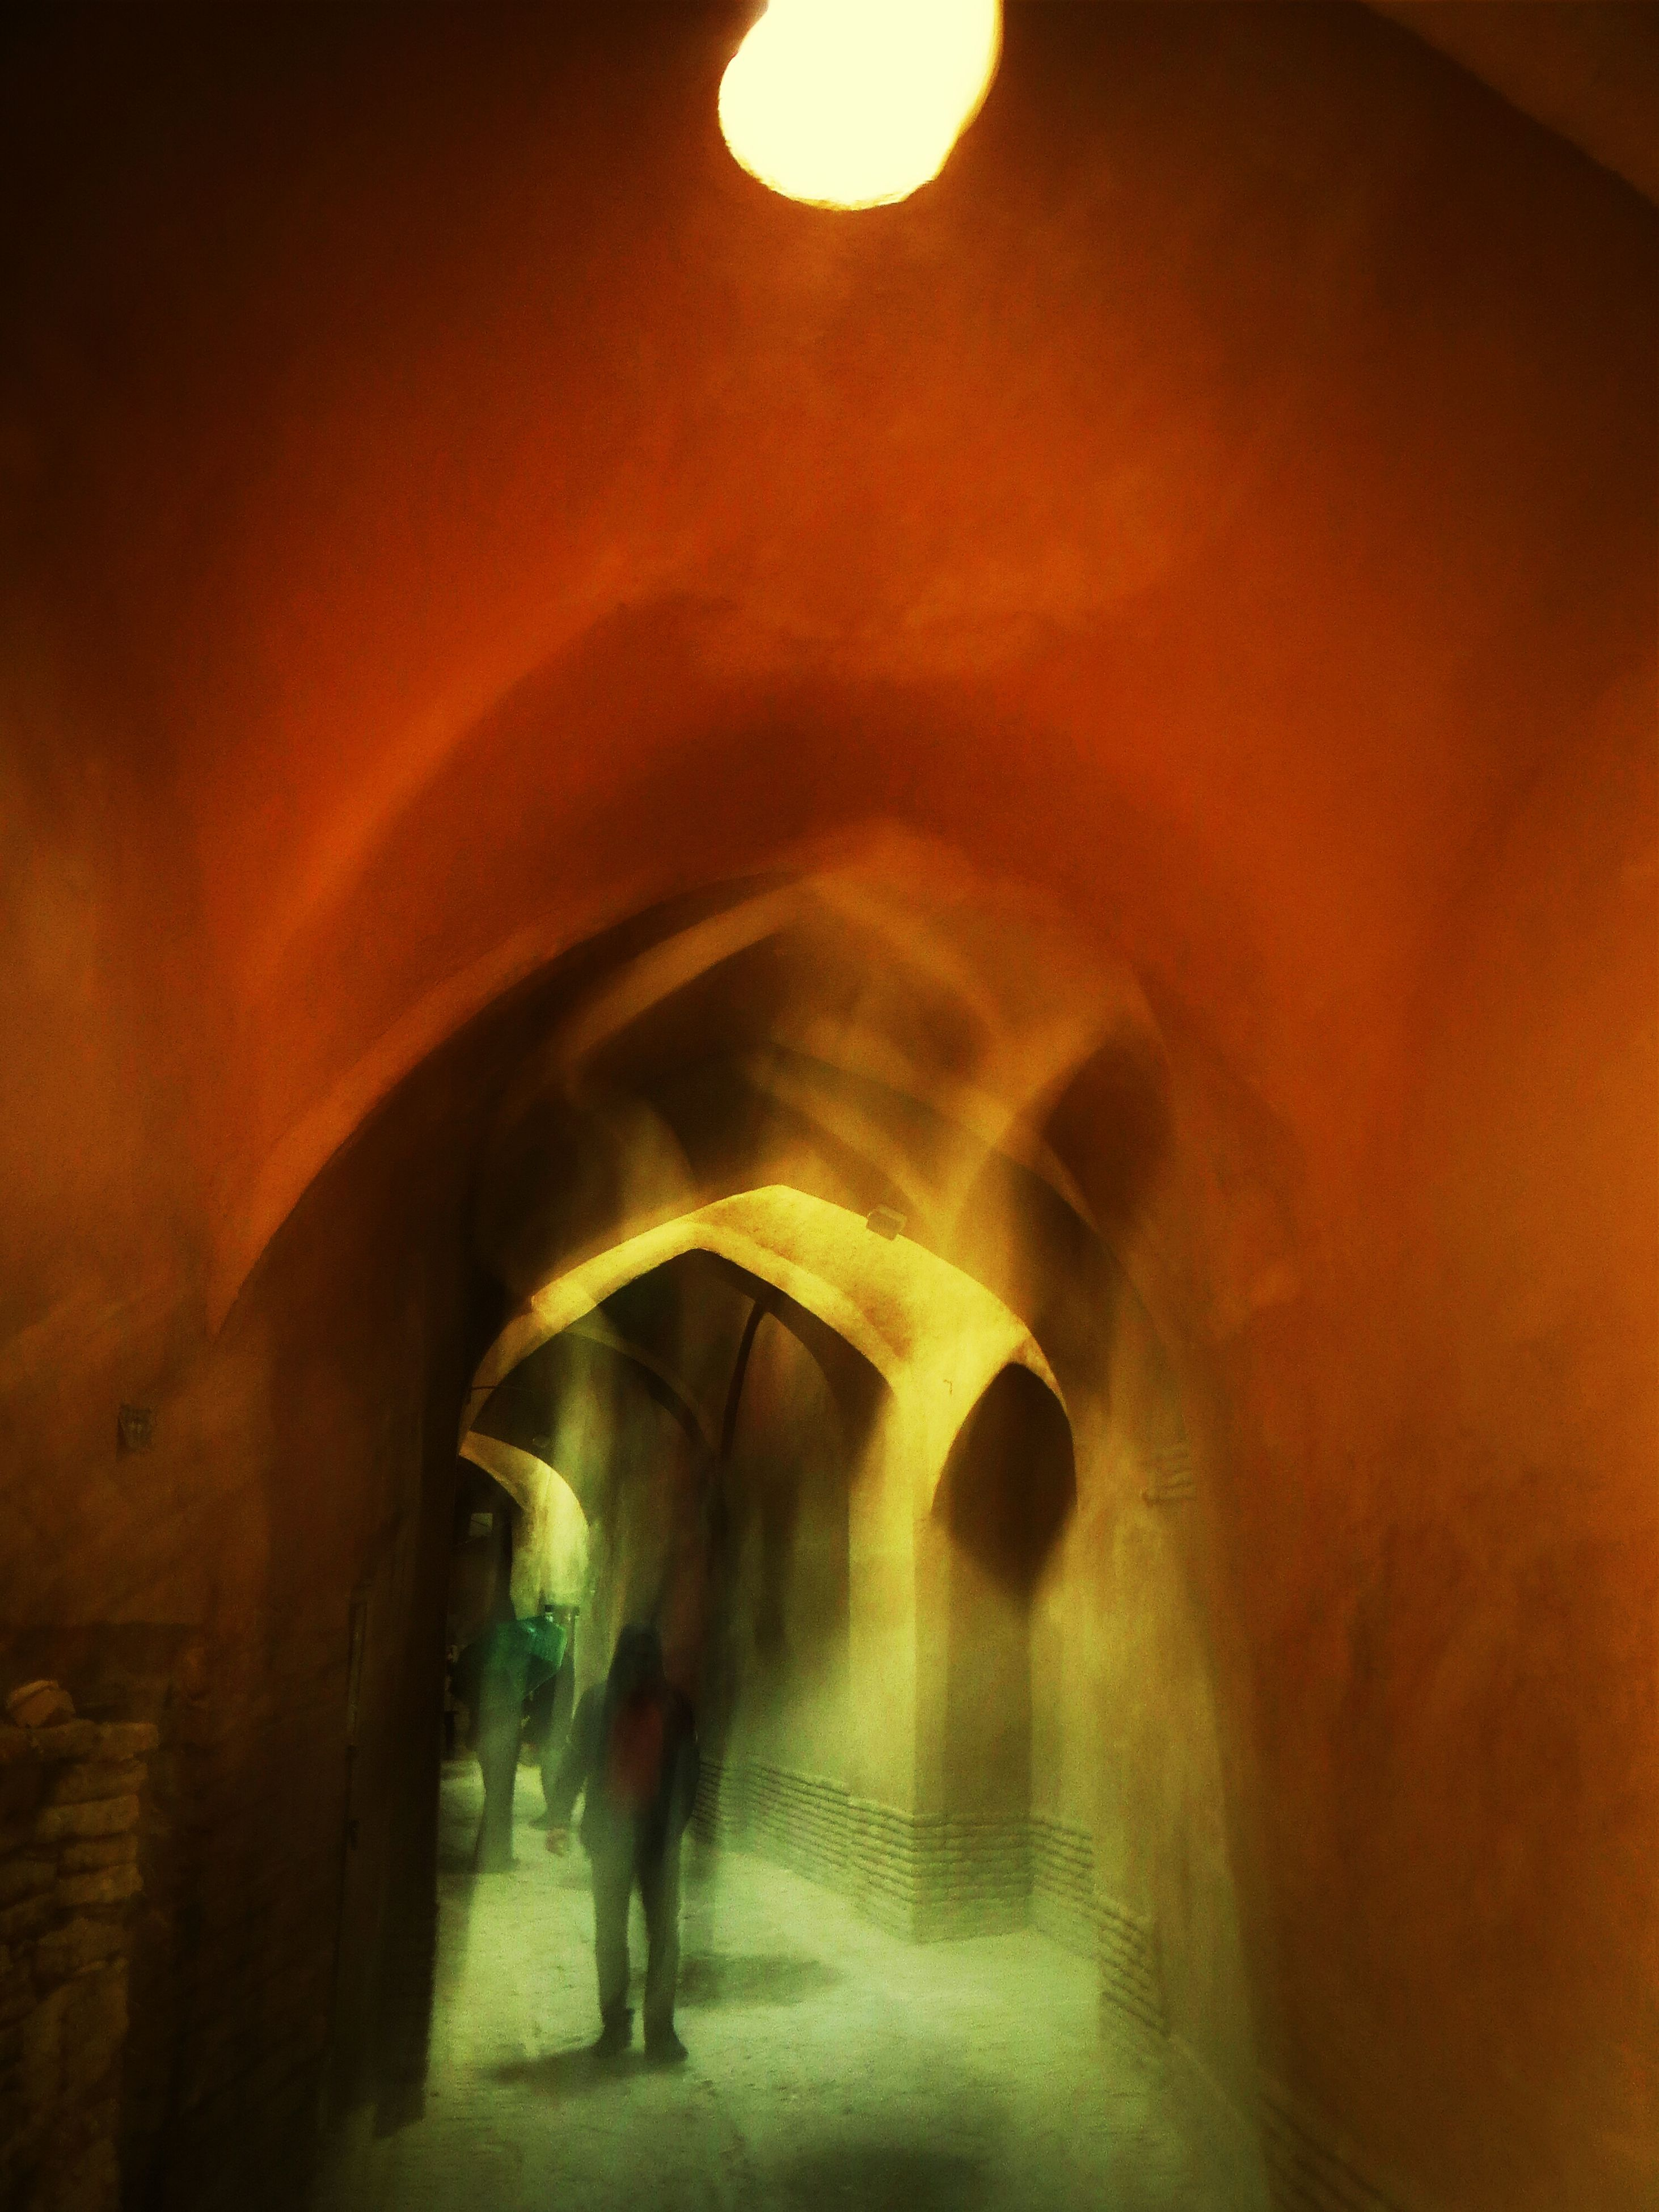 illuminated, indoors, architecture, arch, tunnel, built structure, lifestyles, lighting equipment, men, night, the way forward, walking, leisure activity, person, ceiling, light - natural phenomenon, wall - building feature, unrecognizable person